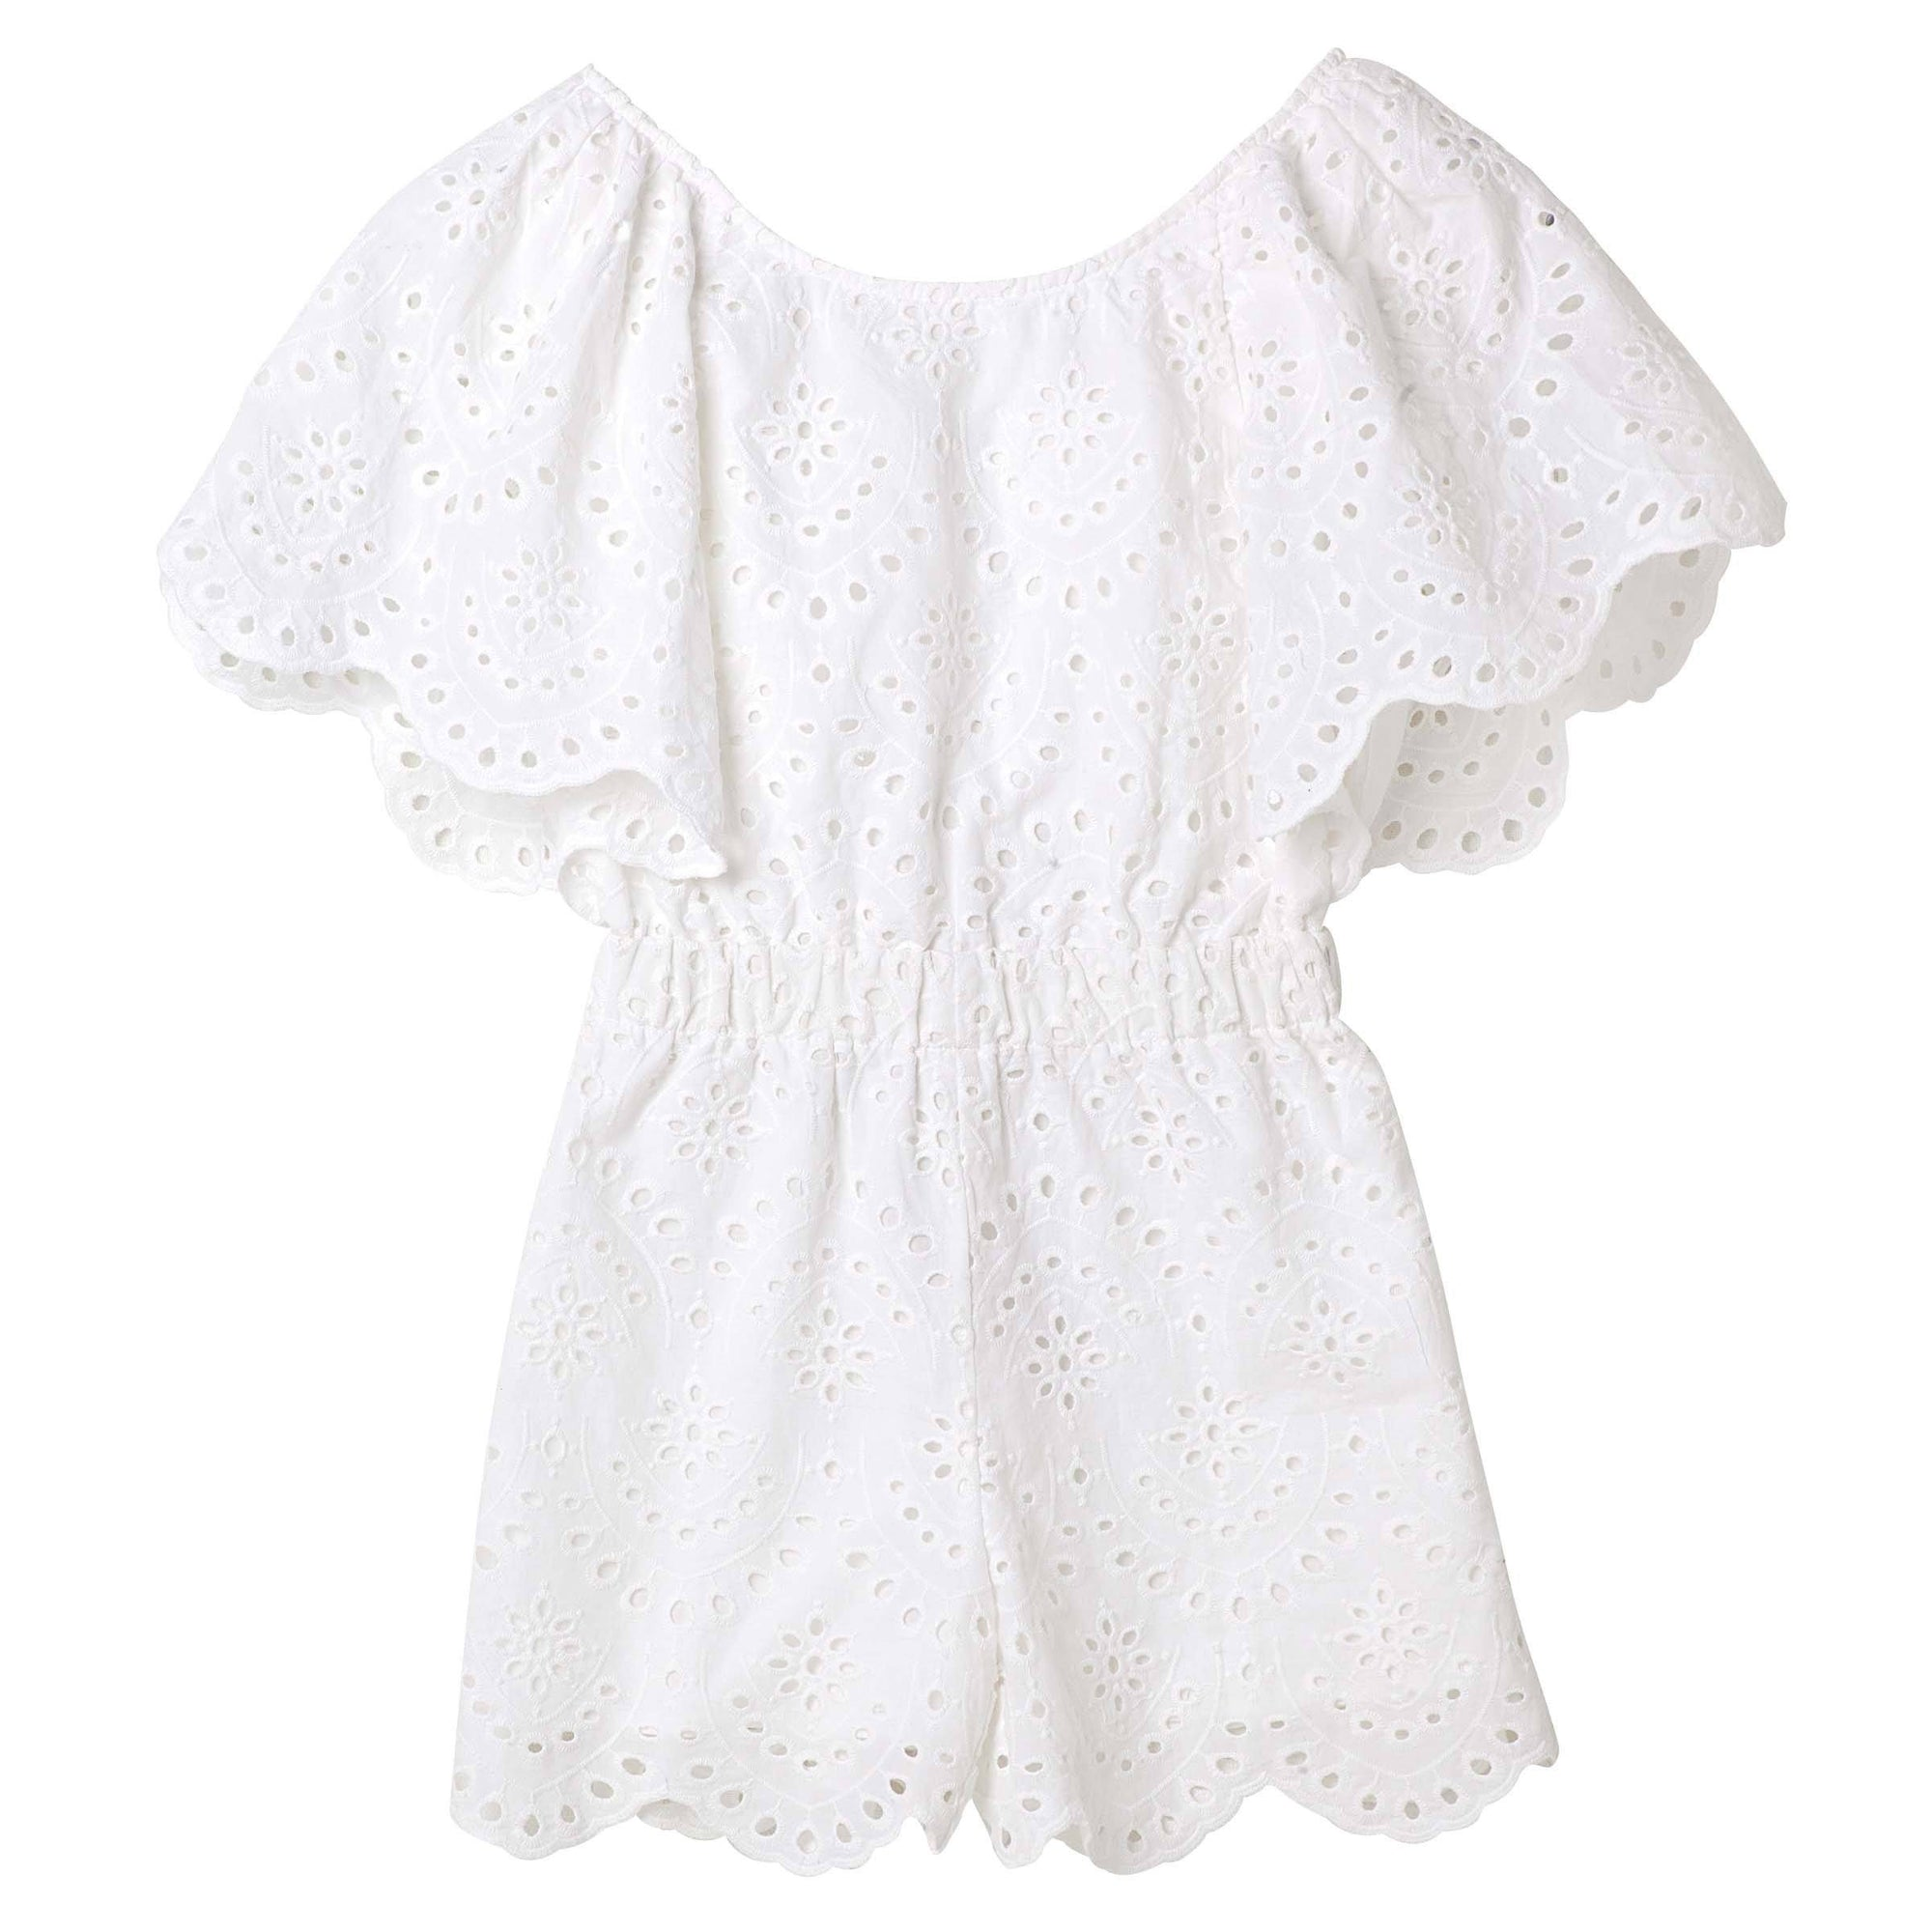 Buy Eva Lace Jumpsuit - Designer Kidz | Special Occasions, Party Wear & Weddings  | Sizes 000-16 | Little Girls Party Dresses, Tutu Dresses, Flower Girl Dresses | Pay with Afterpay | Free AU Delivery Over $80